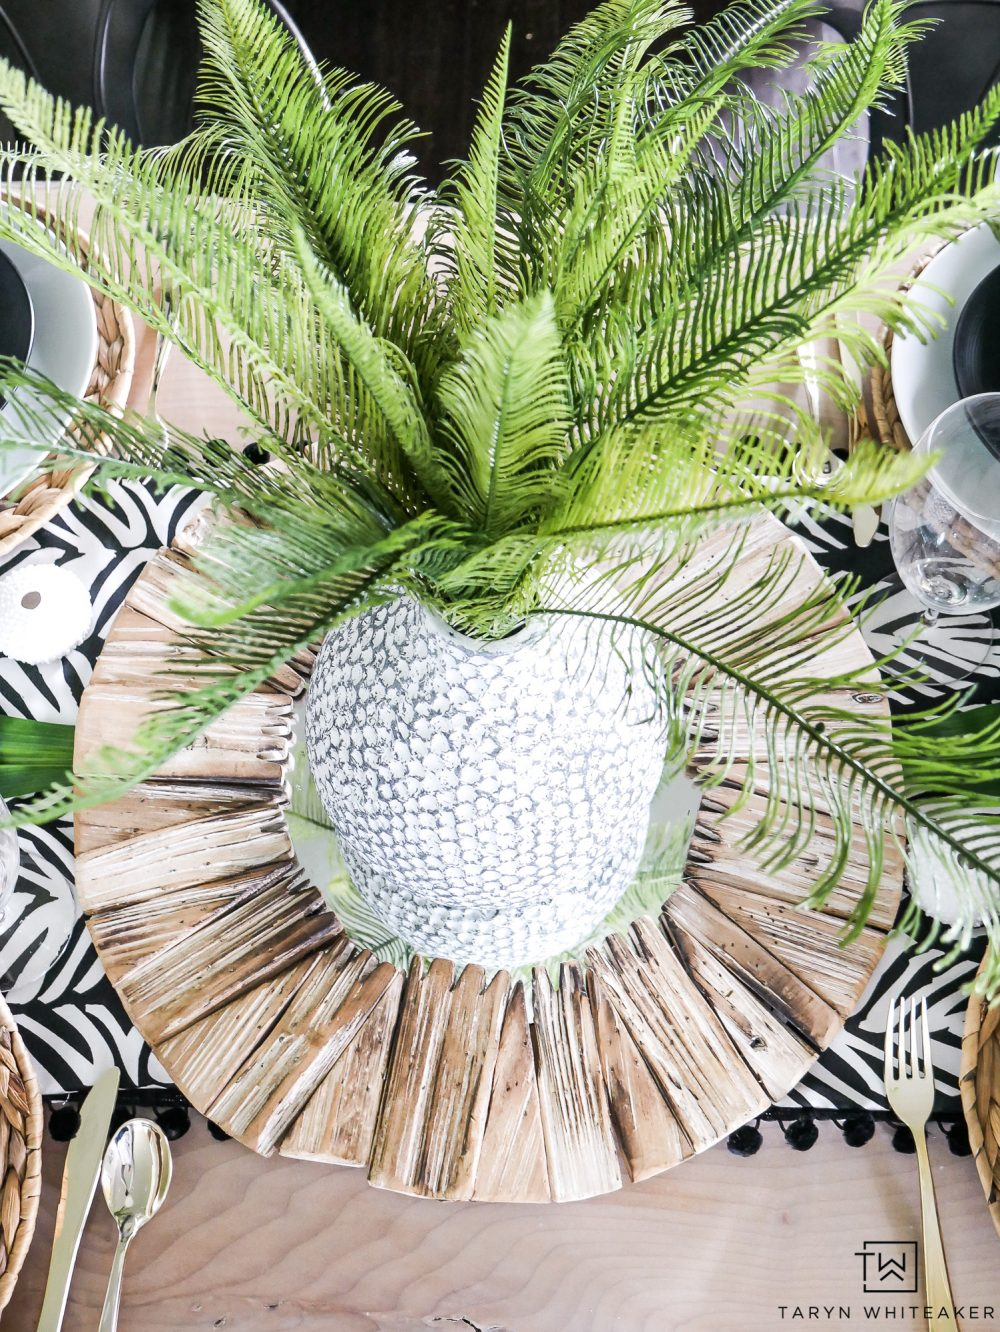 Create a centerpiece using a mirror and vase filled with greenery! A great tropical look for your summer table.